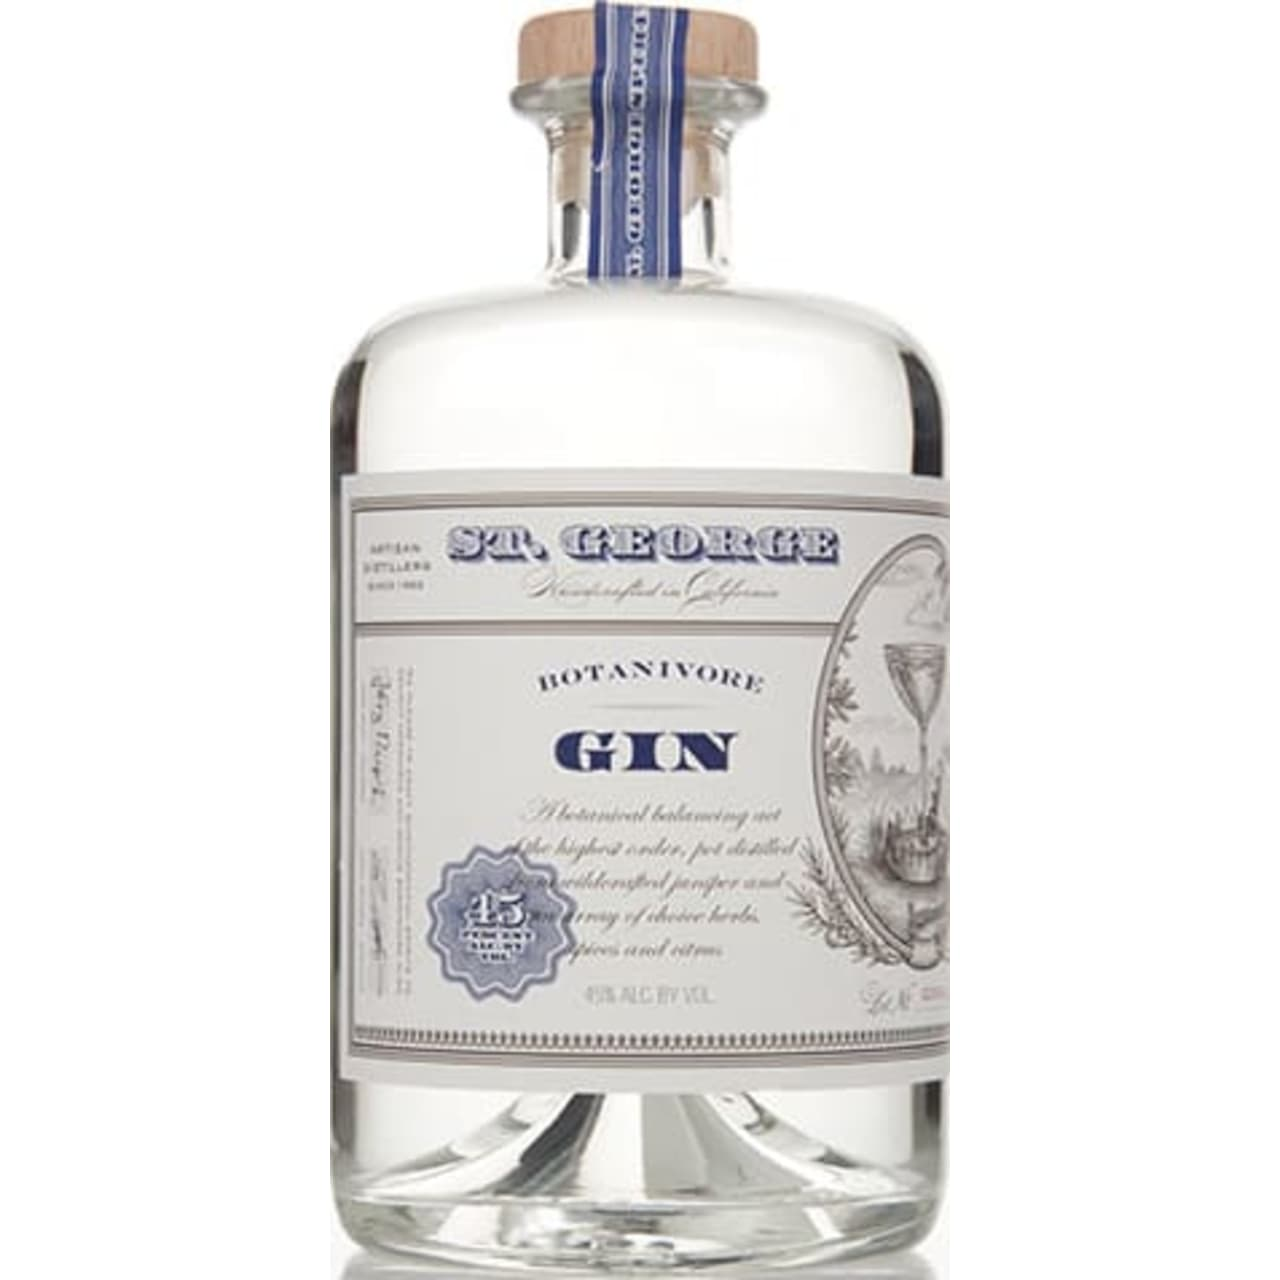 Product Image - St George. Botanivore Gin